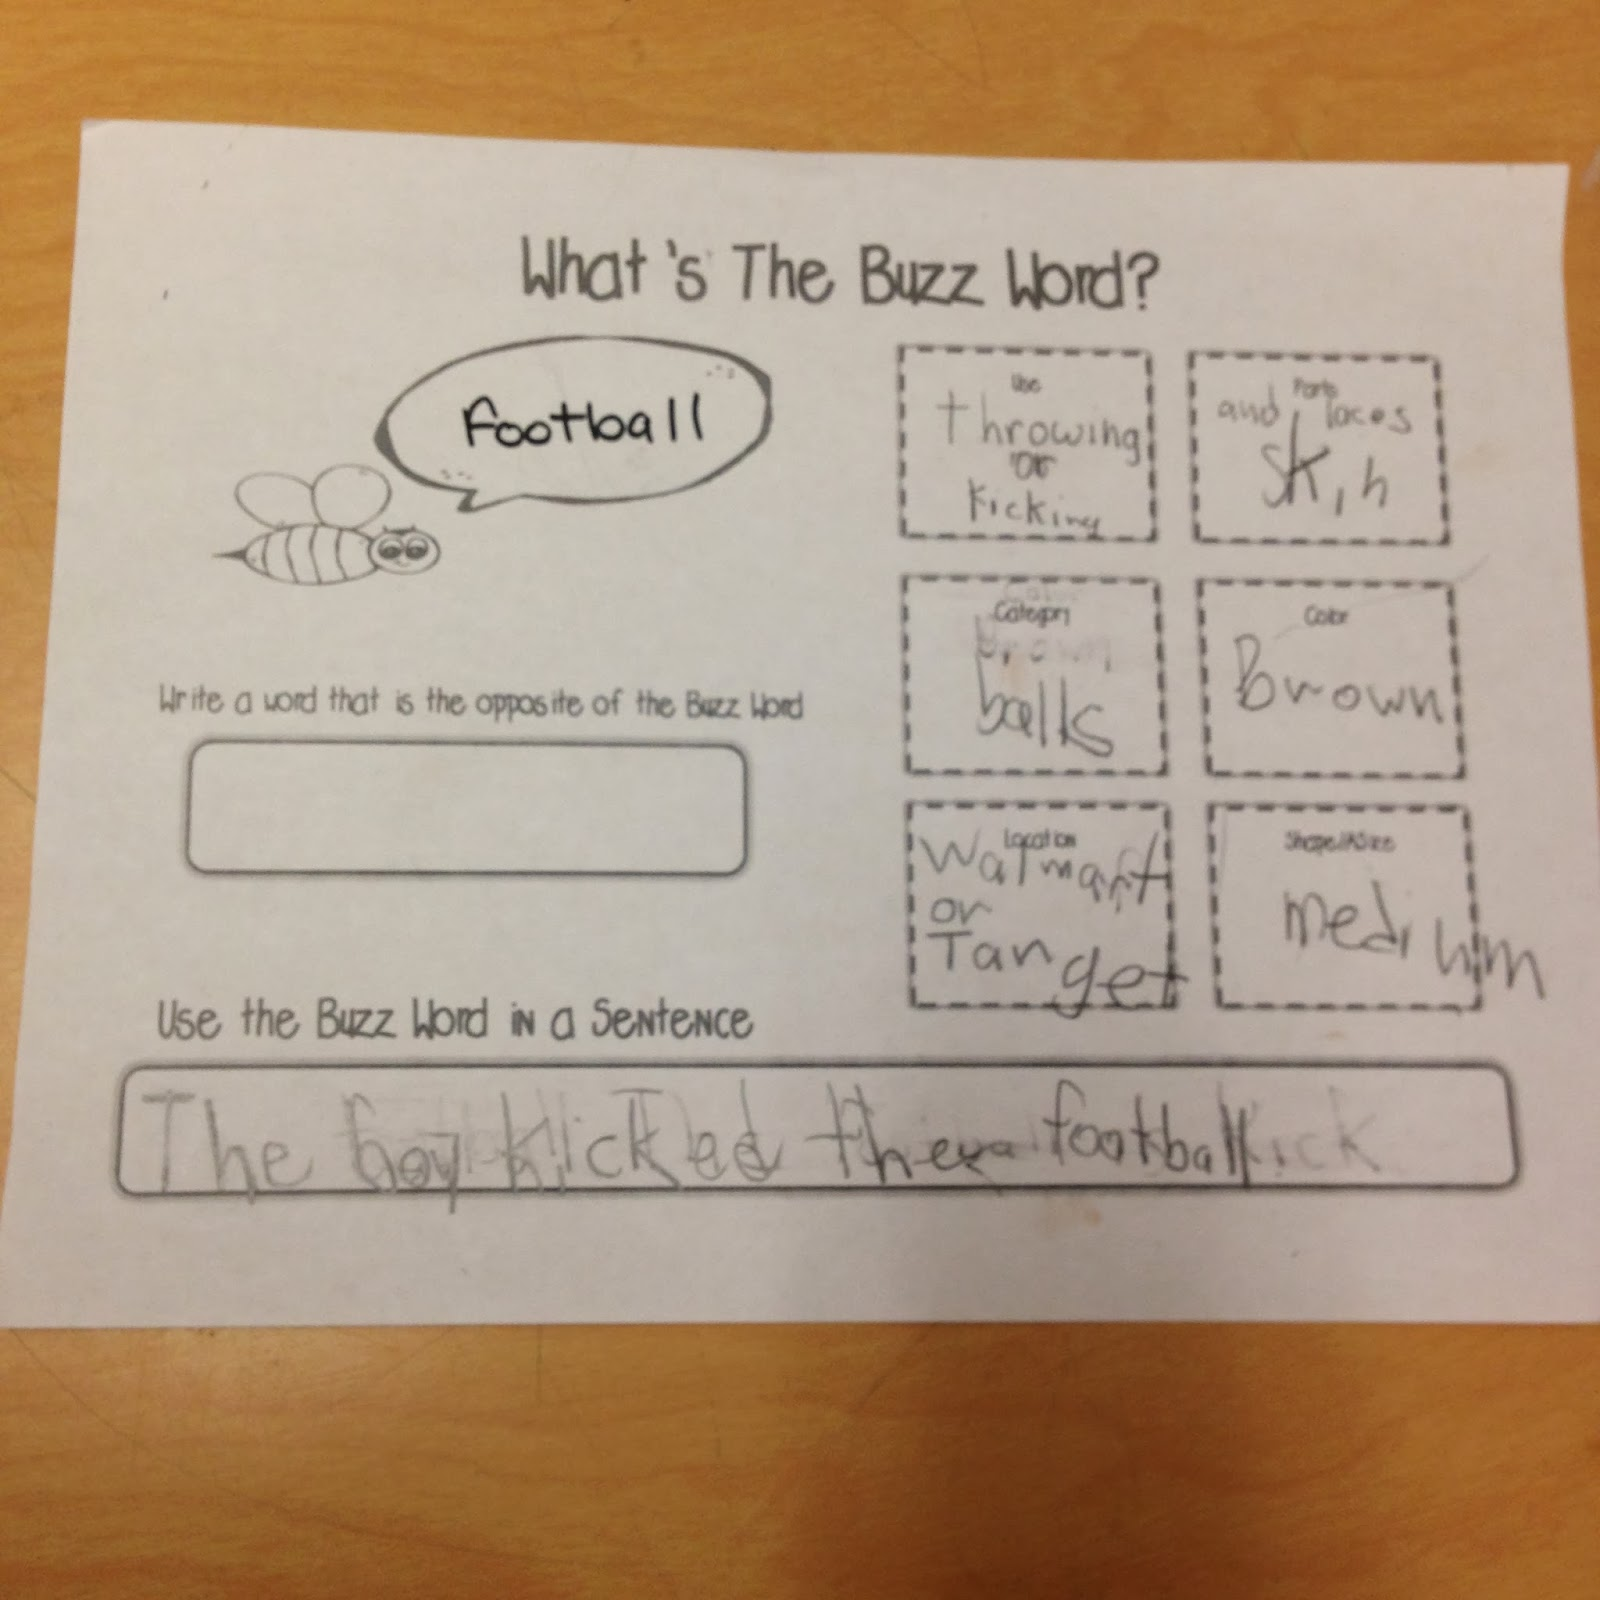 http://www.teacherspayteachers.com/Product/Whats-The-Buzzword-Graphic-Organizer-for-Vocabulary-1051063